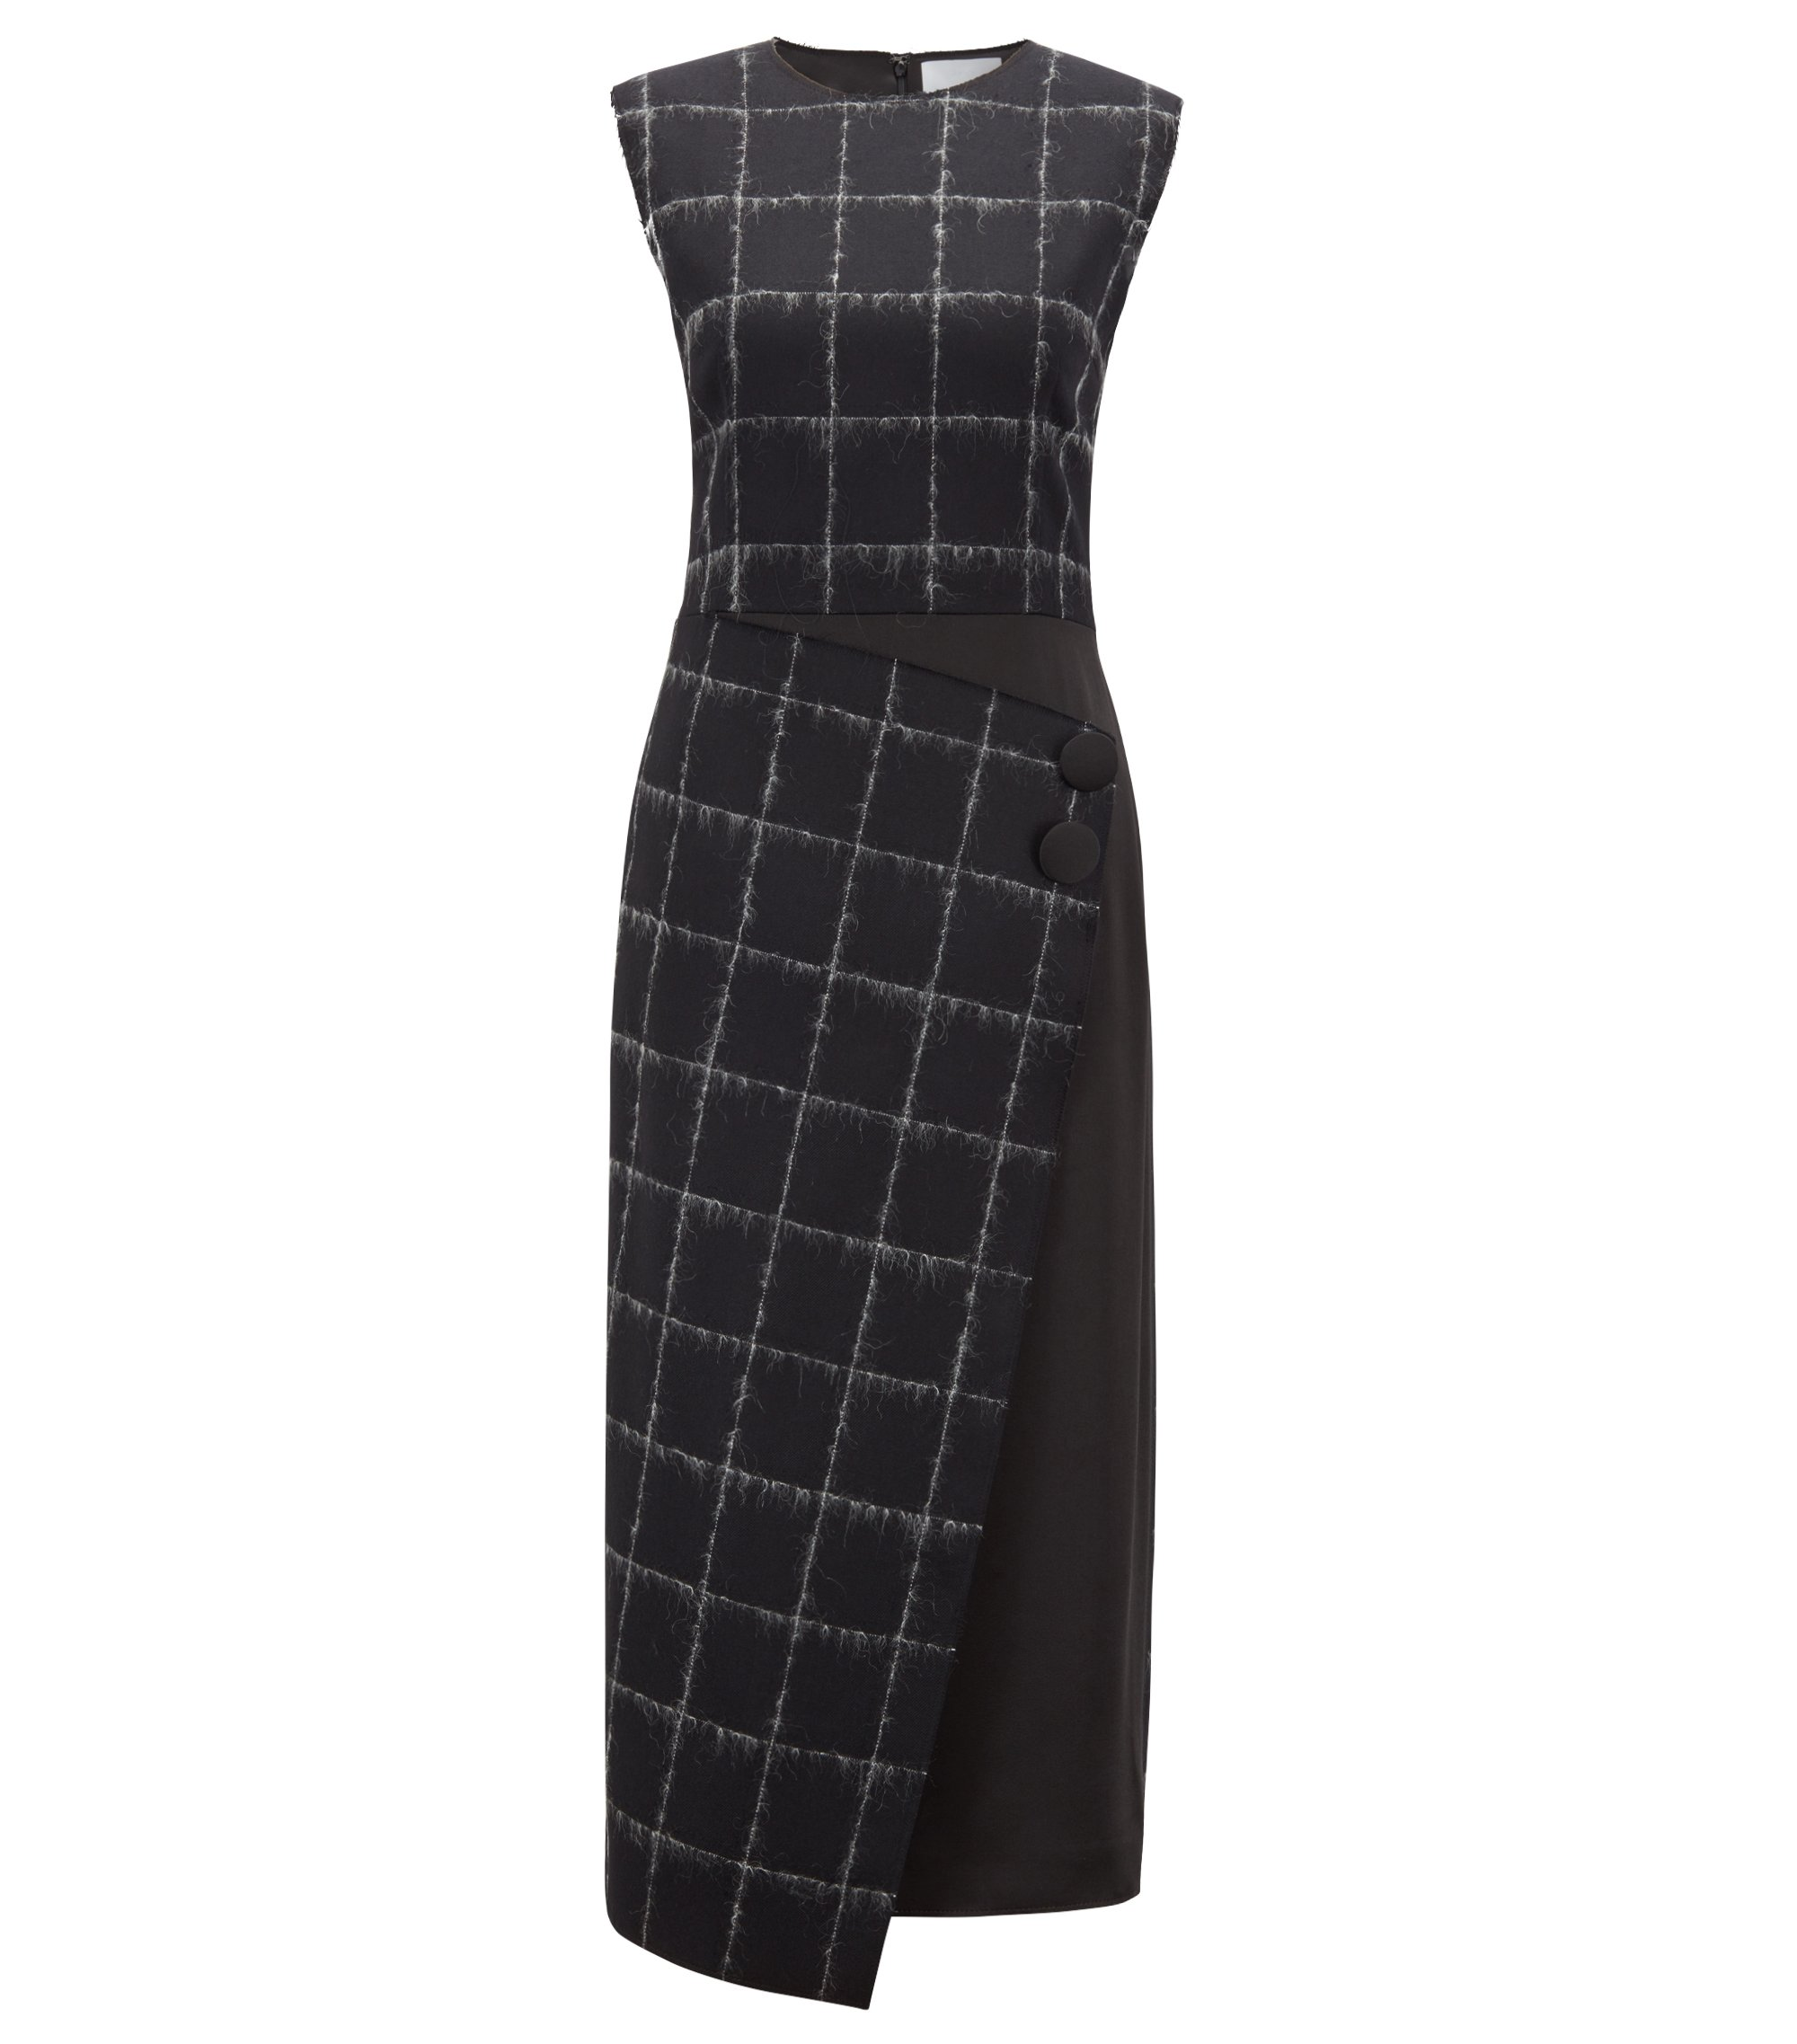 Gallery Collection tailored dress in a checked wool blend, Patterned